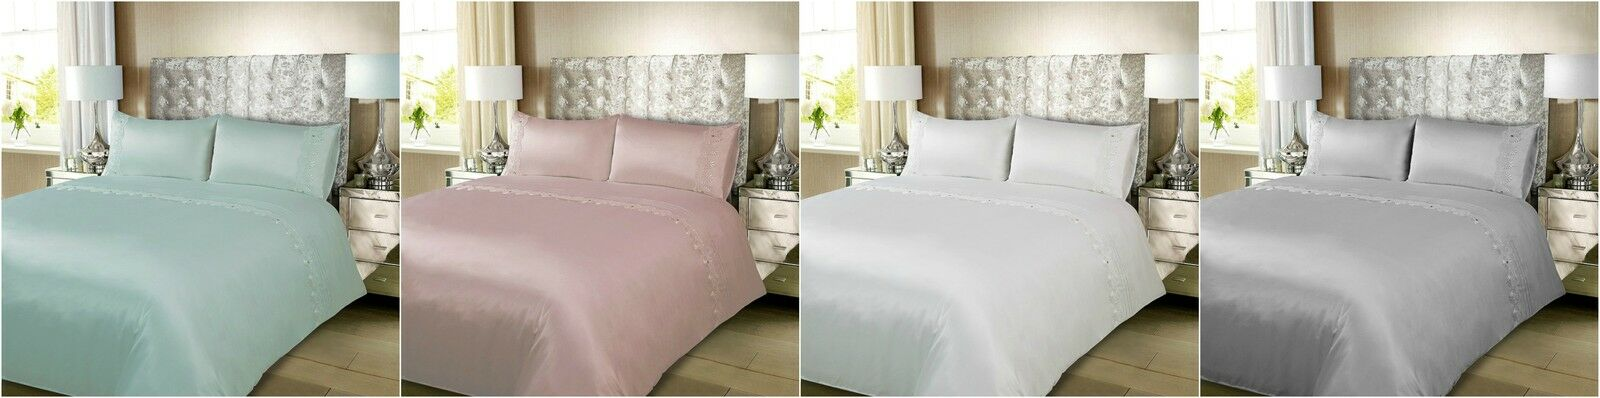 Karina Bailey Charlotte Modern Look Design Satin Lace Gem King Größe Duvet Set